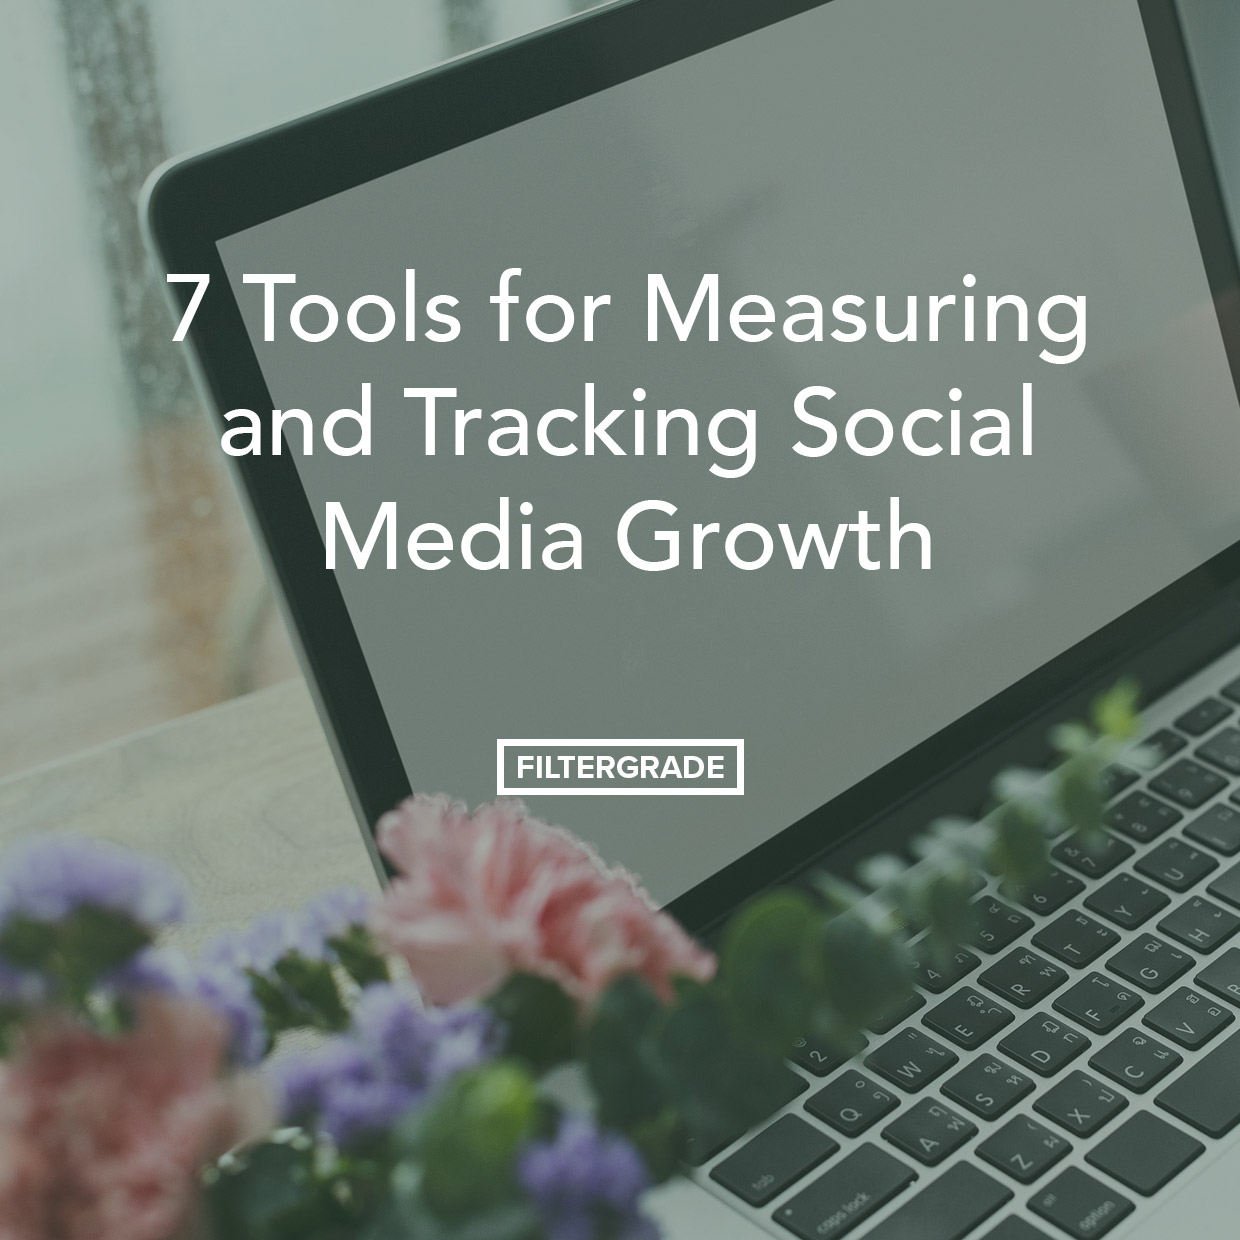 Best social media tools for measuring and tracking growth of your accounts and brand.